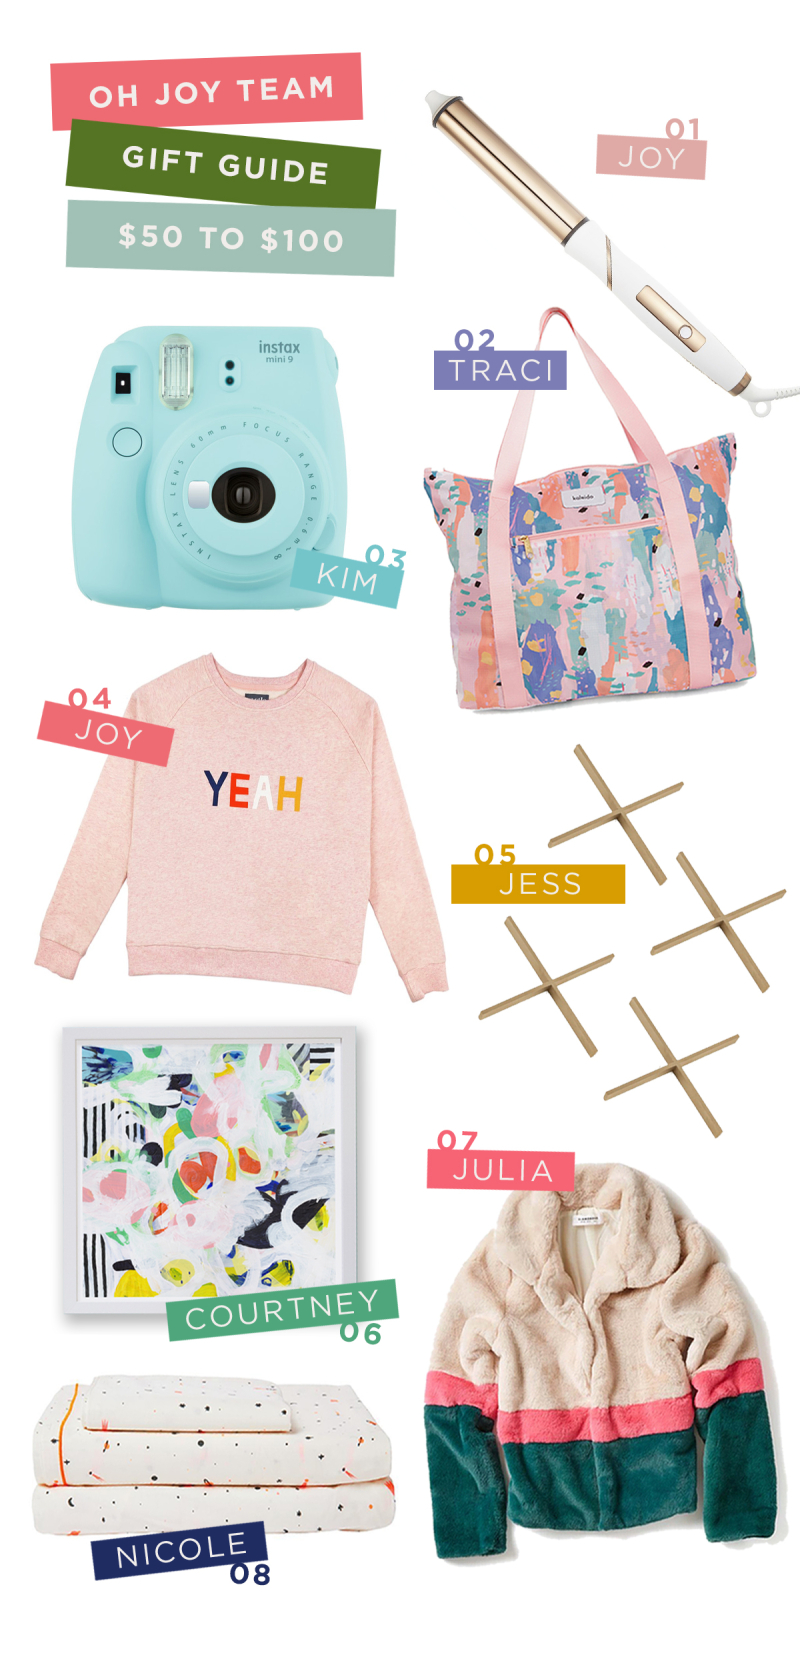 Oh Joy Team Gift Guide: $50 to $100: Joy, Traci, Kim, Jess, Julia, Courtney, Nicole / via Oh Joy!